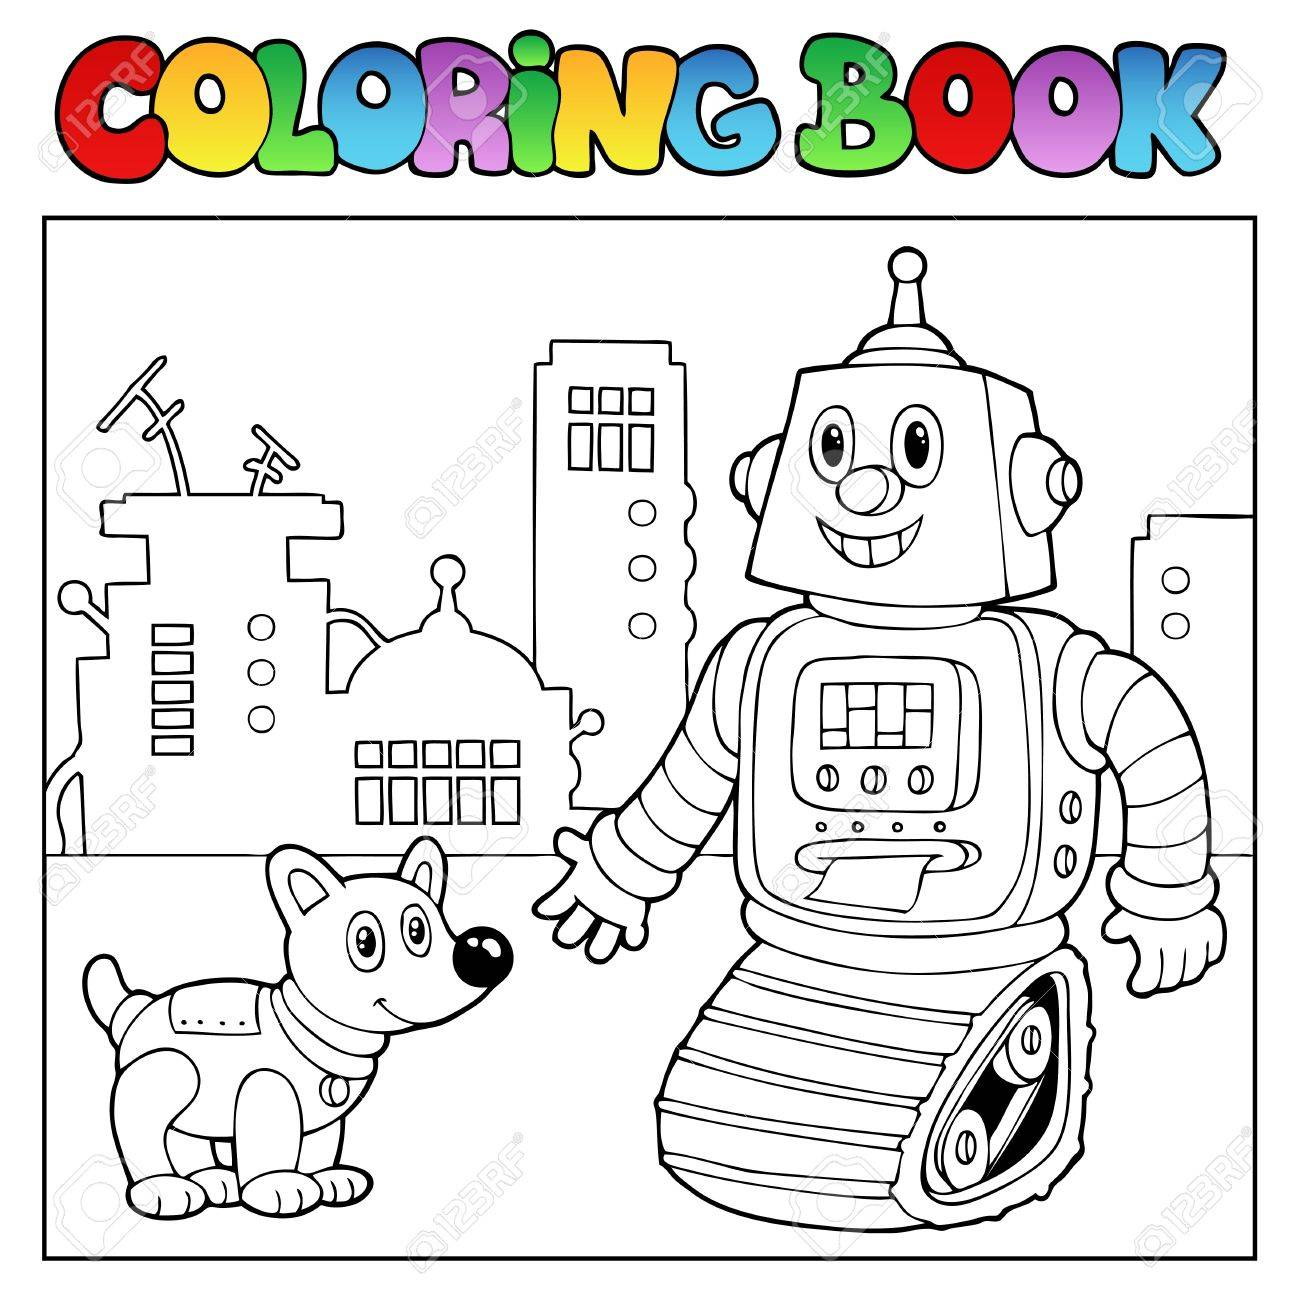 Coloring pictures robot - Coloring Book Robot Theme 2 Vector Illustration Stock Vector 11124937